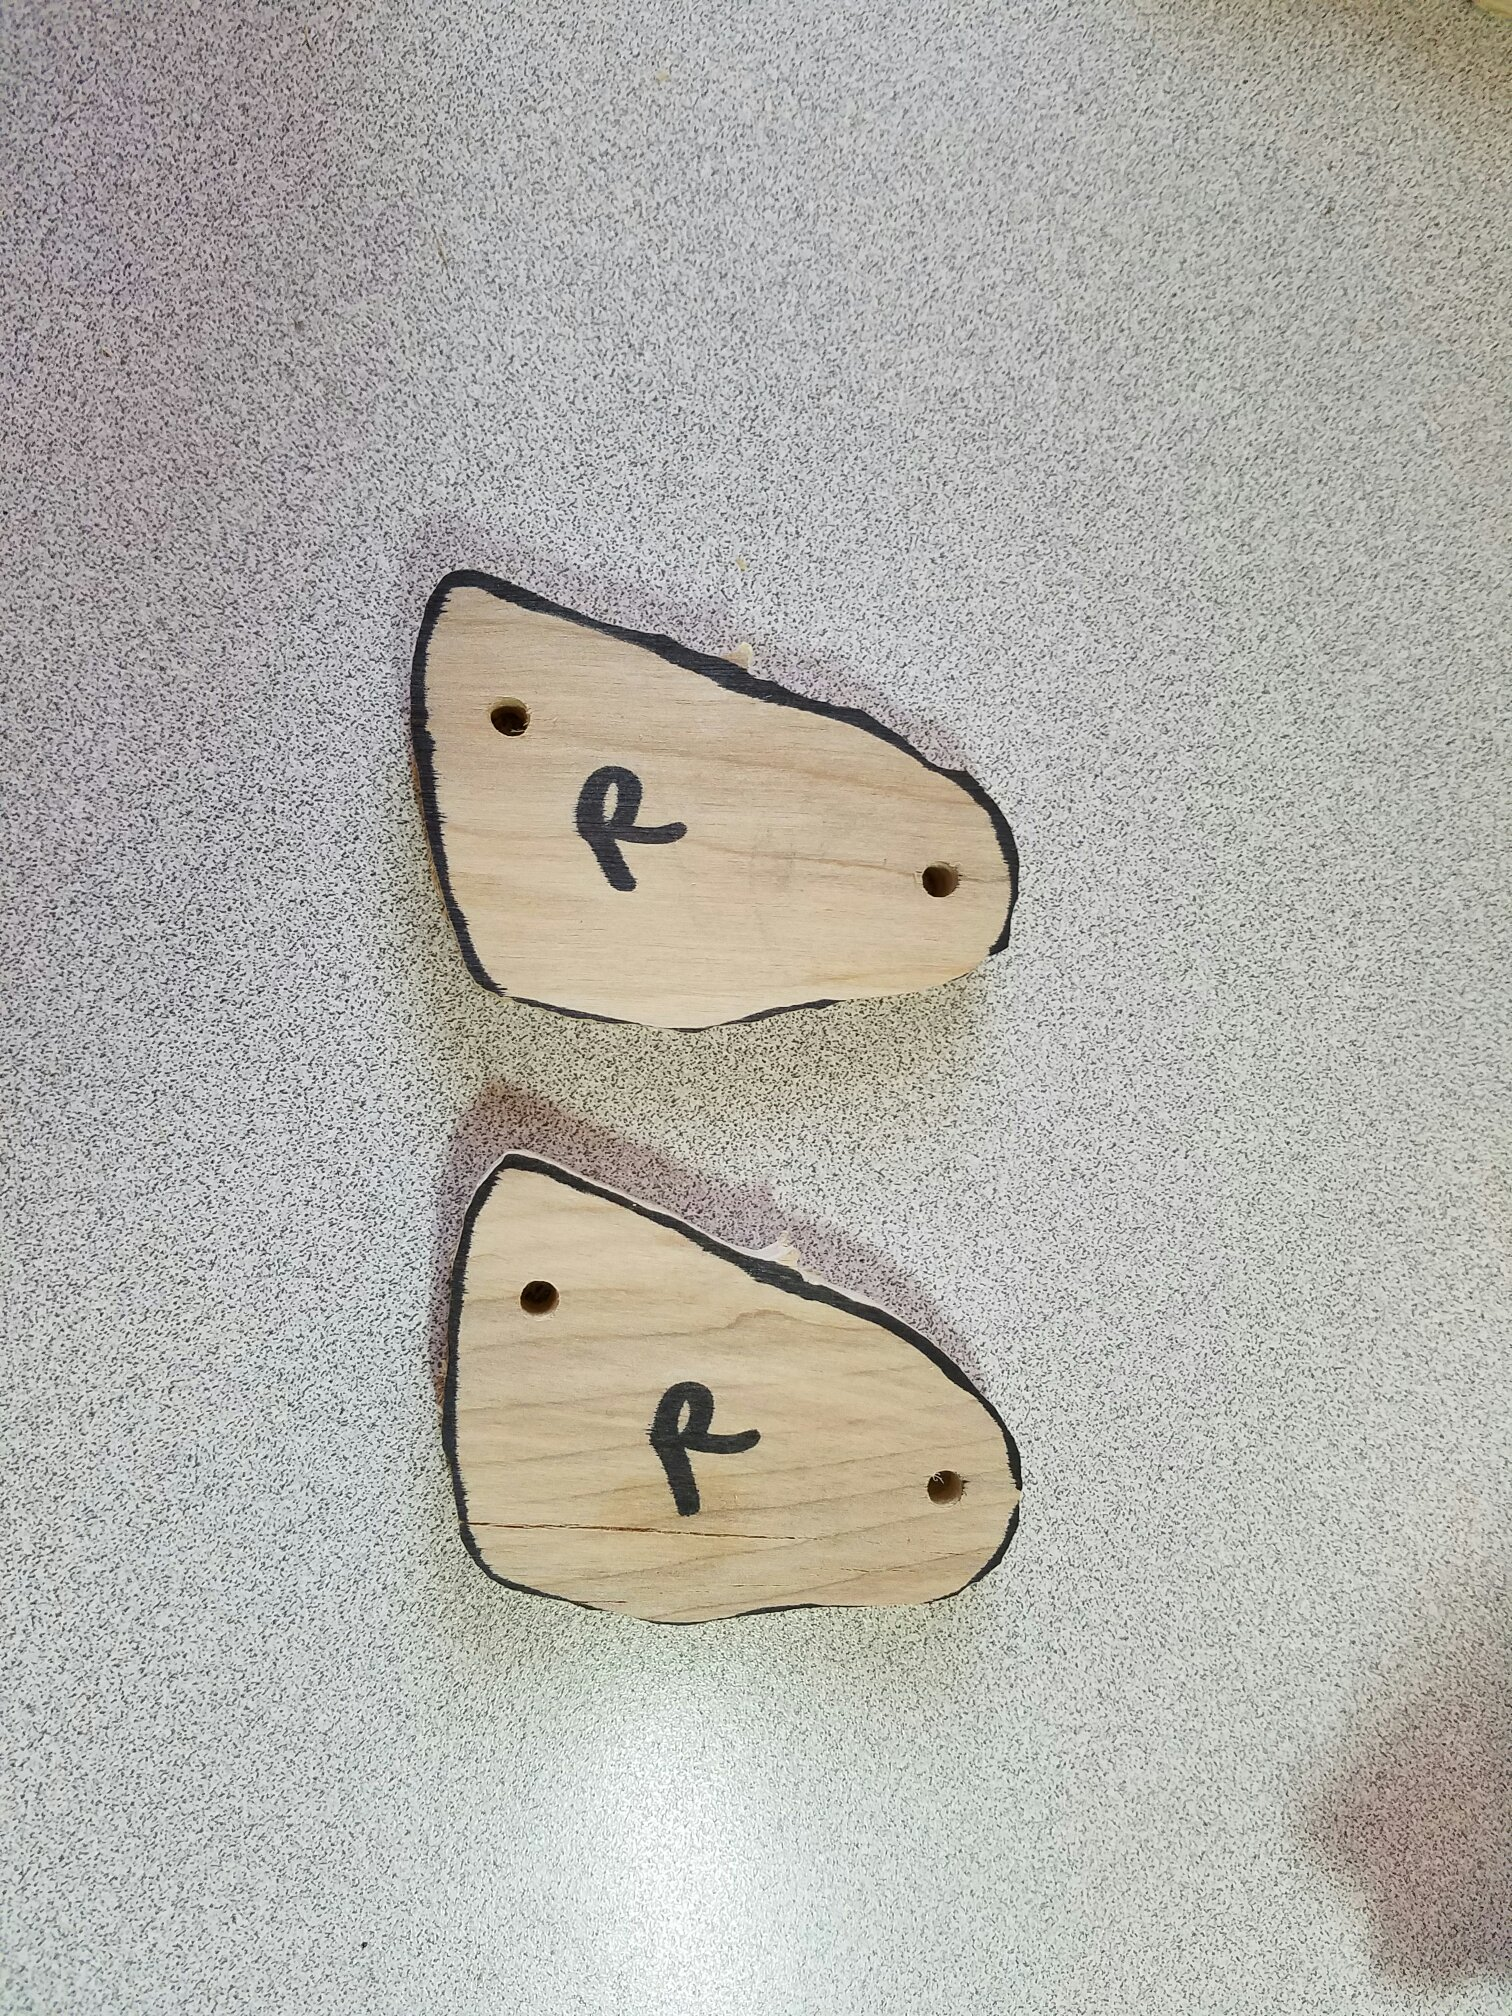 Picture of Cutting Out Parts